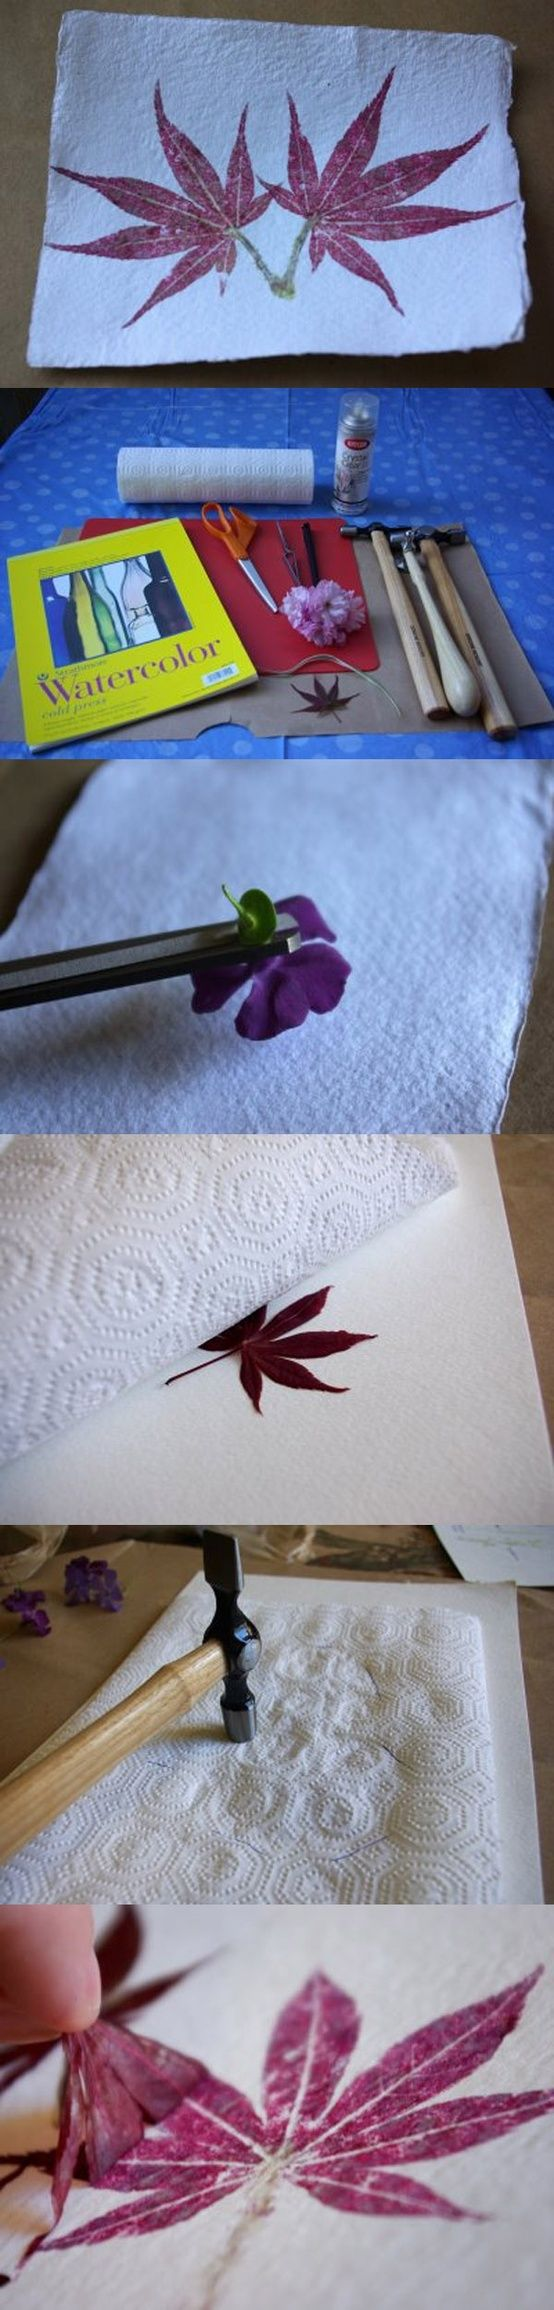 Hammered flower and leaf prints ( flowers or leaves, watercolor paper or other rough paper )